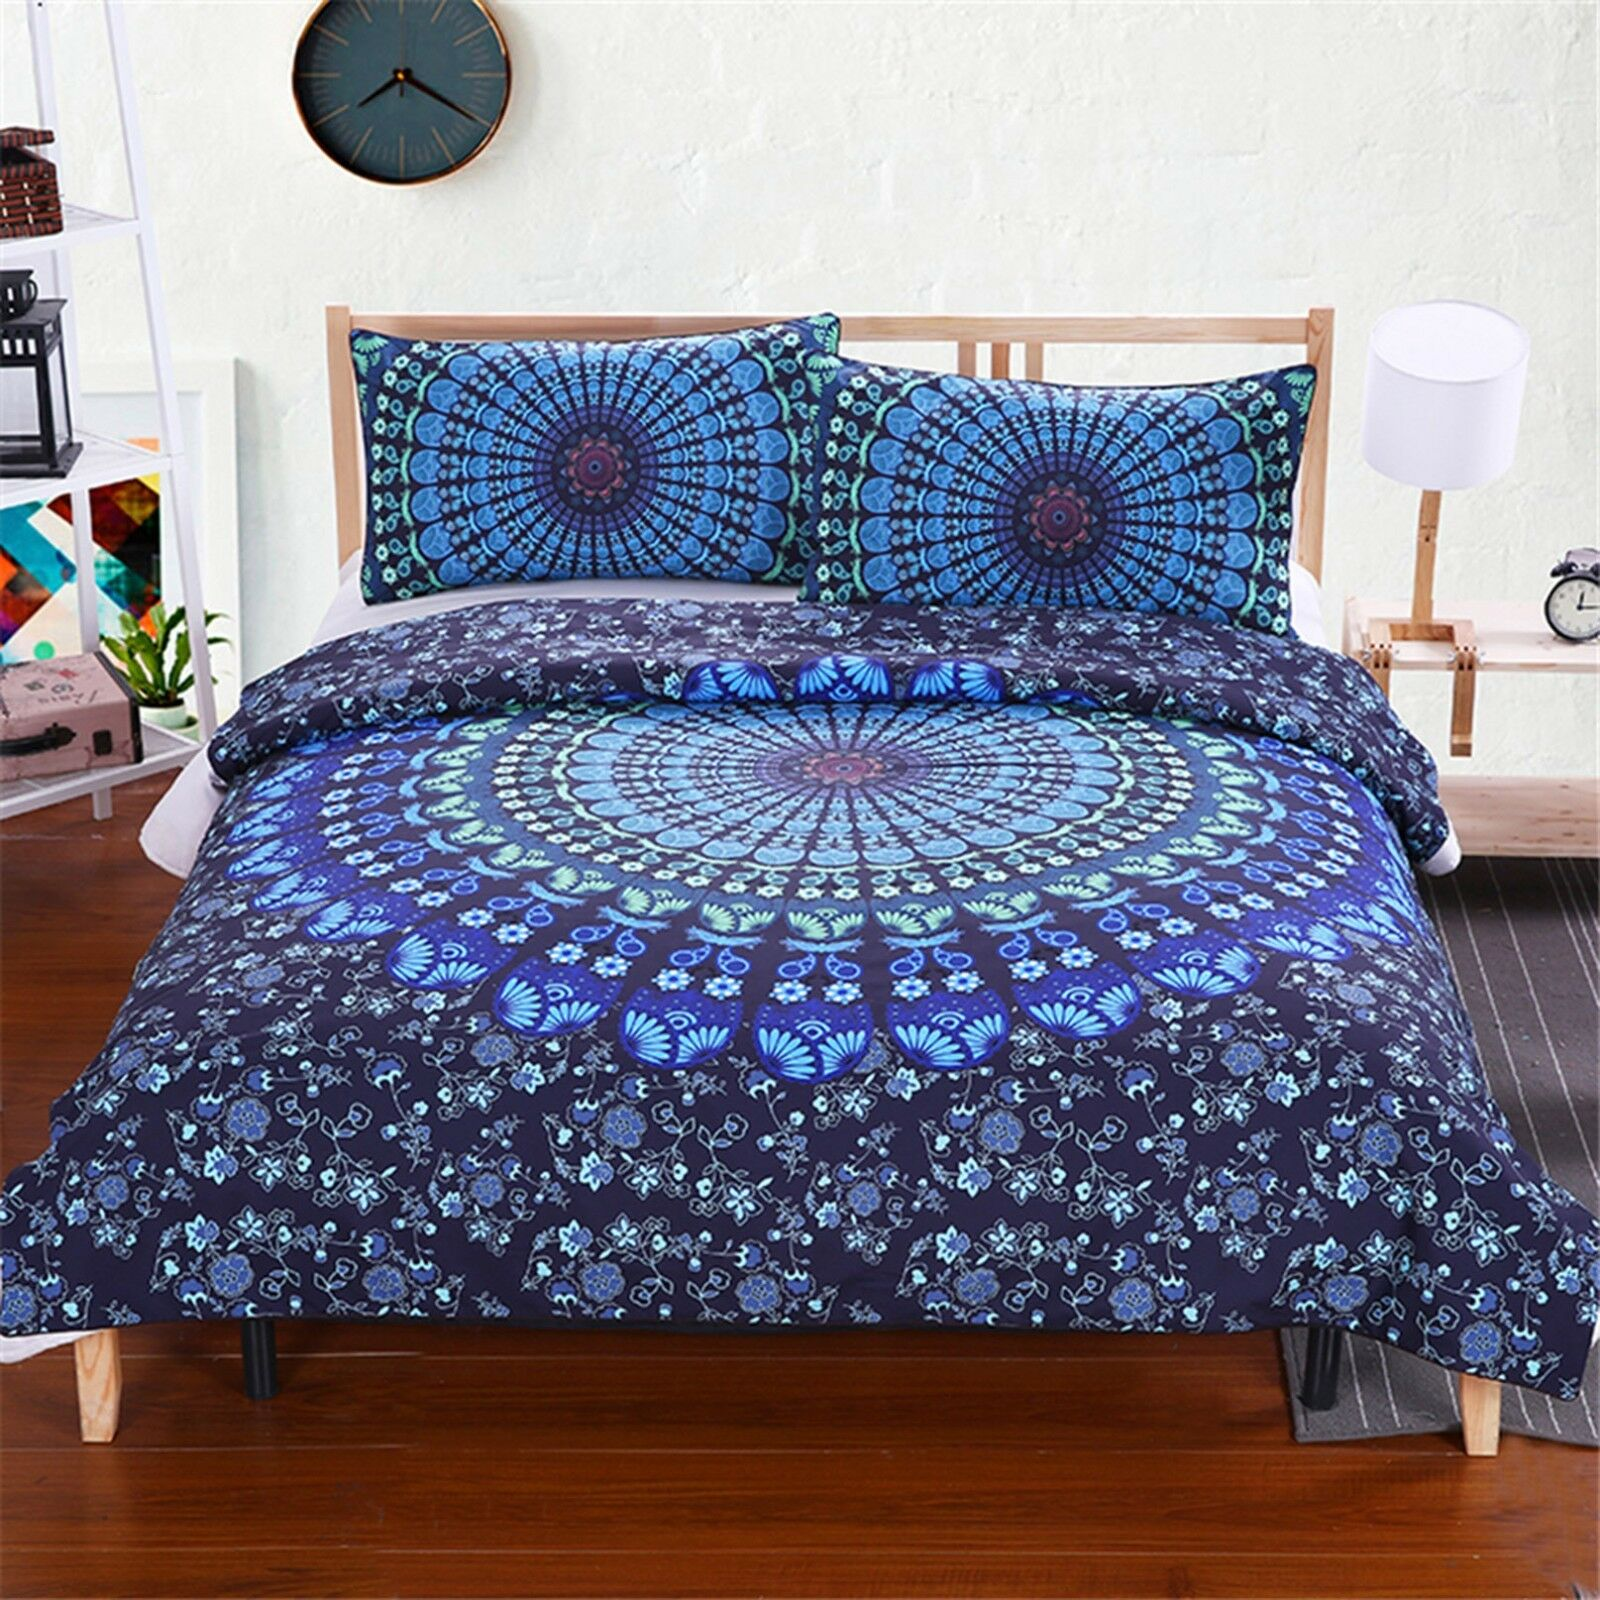 3D Blau Pattern Art 4774 Bed Pillowcases Quilt Duvet Cover Set Single Queen CA